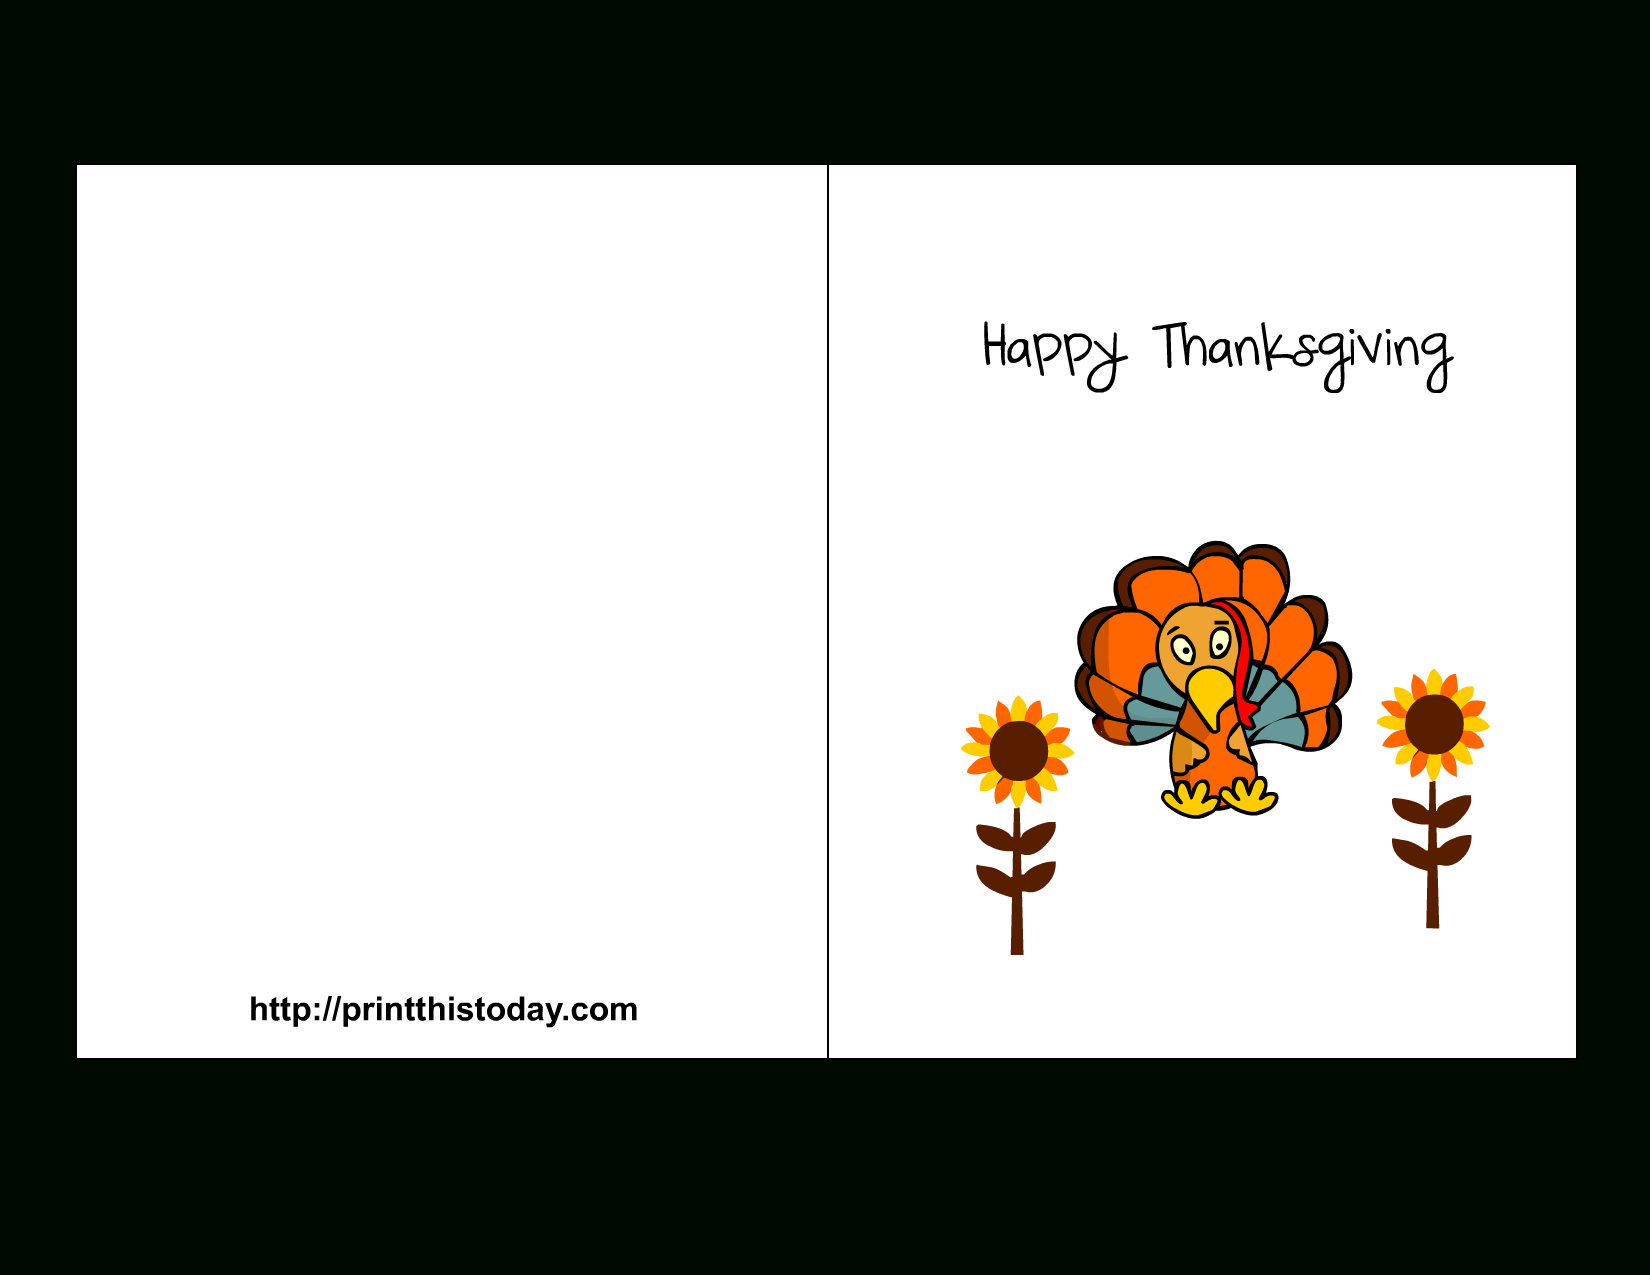 Thanksgiving Black And White Stock Card For Kids Printable - Rr - Happy Thanksgiving Cards Free Printable